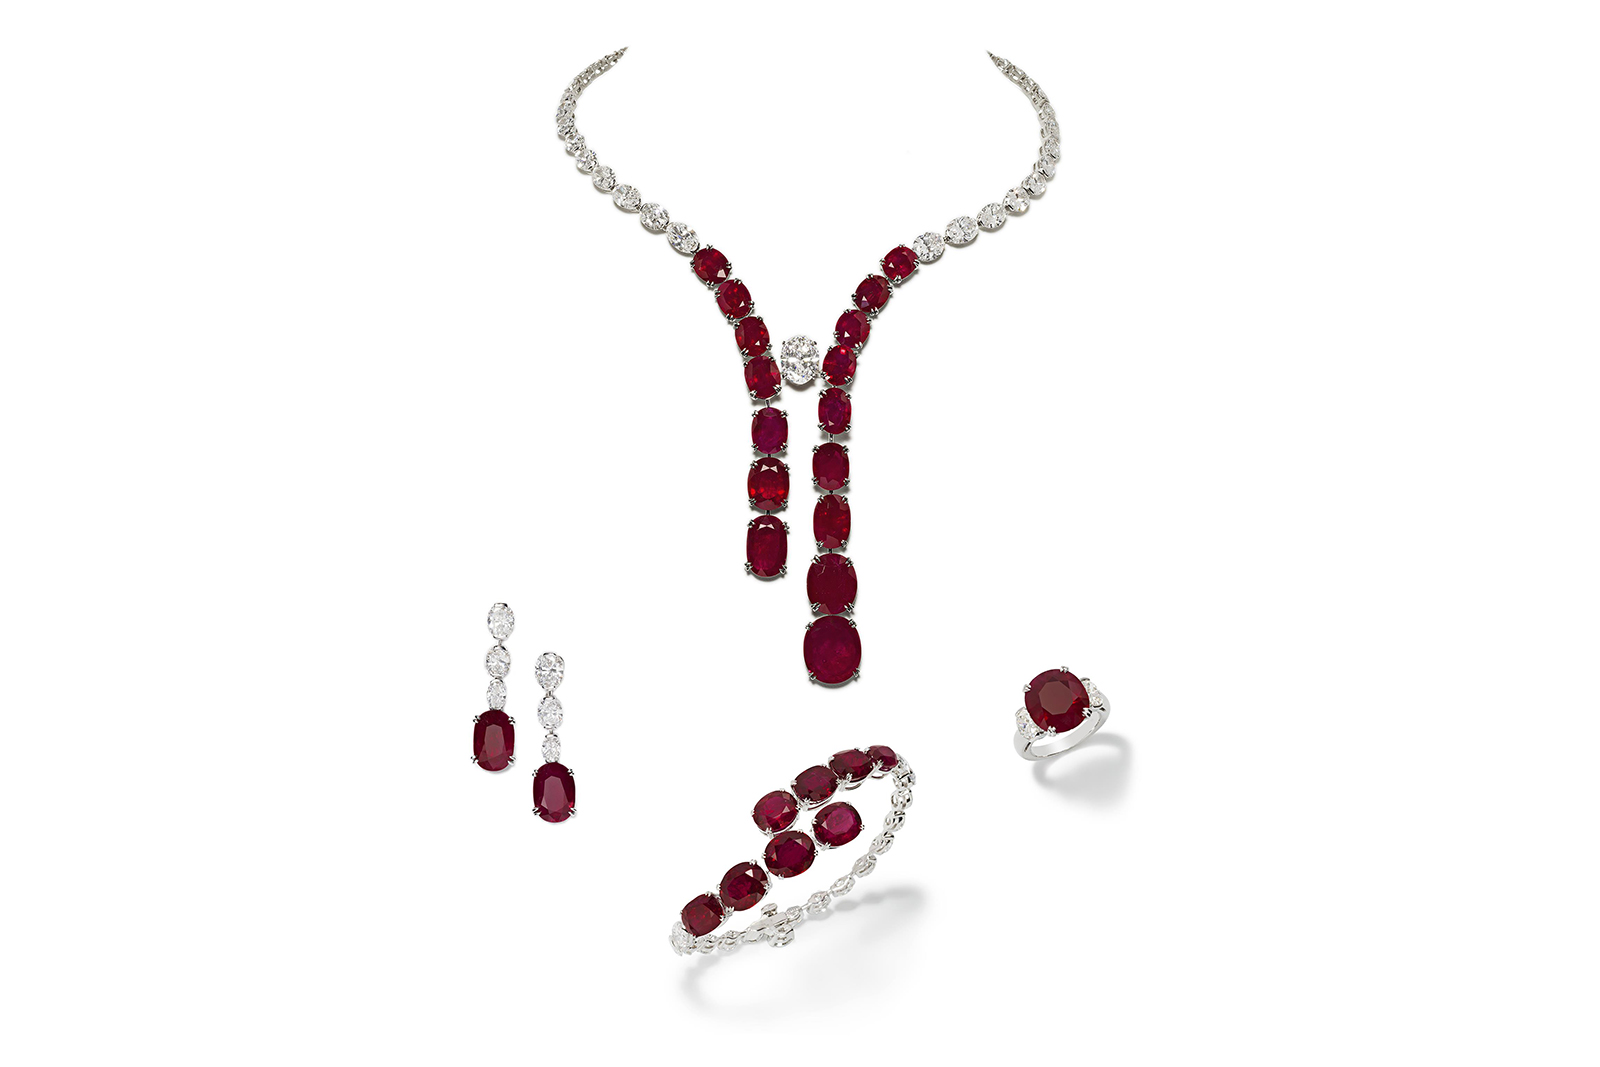 This one-of-a-kind set by Jahan is a masterpiece that contrasts the rich beauty of rubies with the purity of classic white diamonds